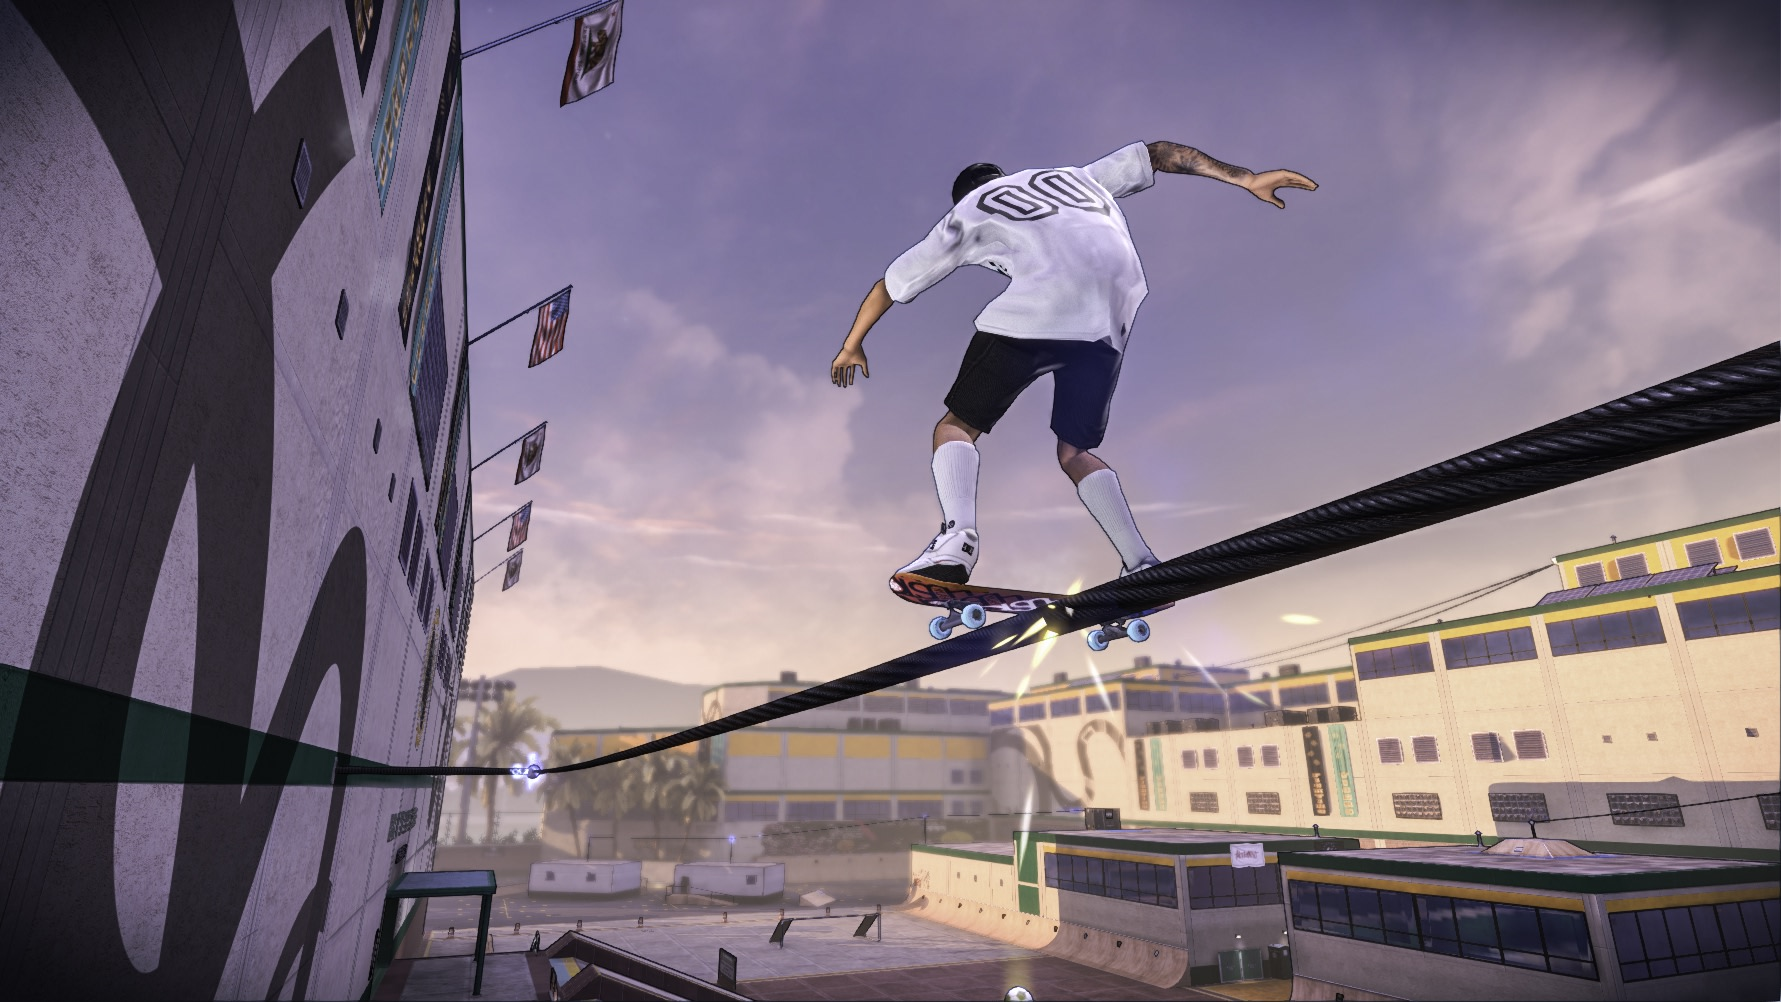 Download Tony Hawk's Pro Skater 2. The second skateboarding game in the Tony Hawk series. ✓ Virus Free. PES 2017 Pro Evolution Soccer 2017. New downloadable version of the popular soccer game.